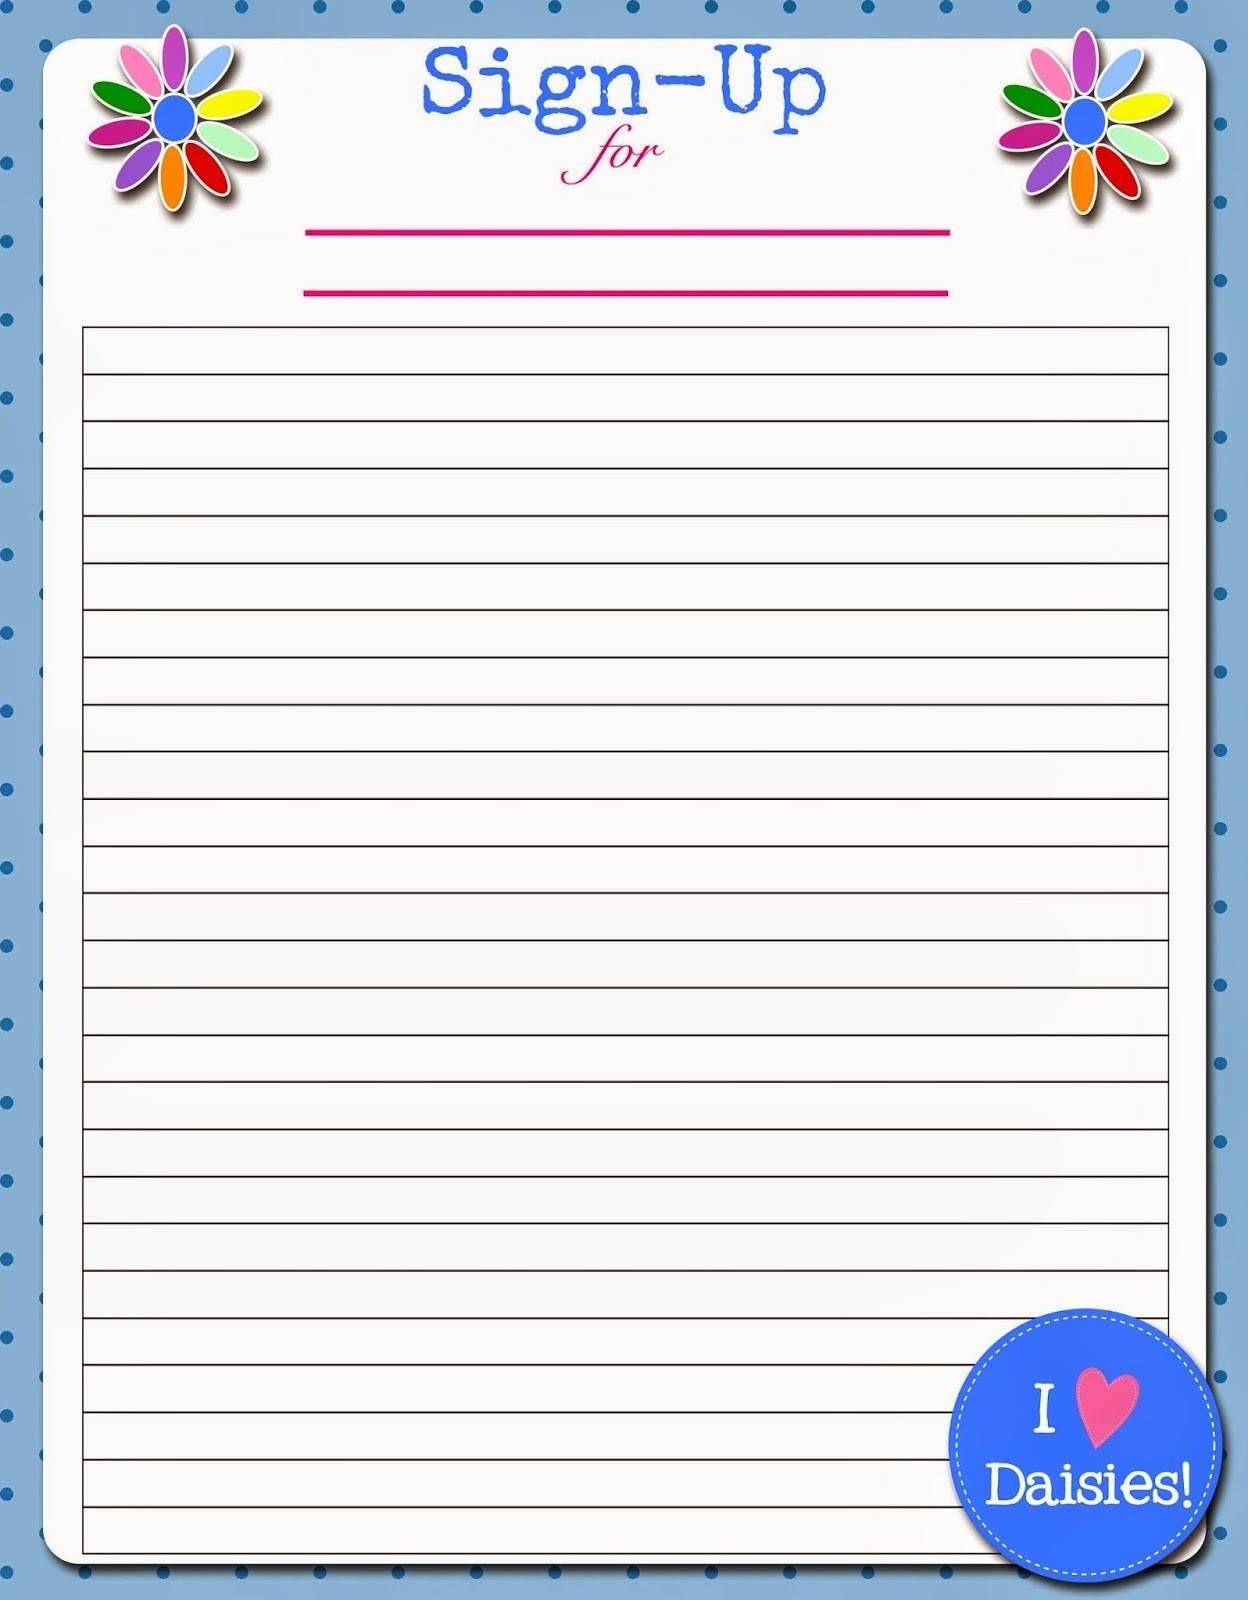 Blank Sign Up Sheet Template Elegant Potluck Sign Up Sheet Word for events